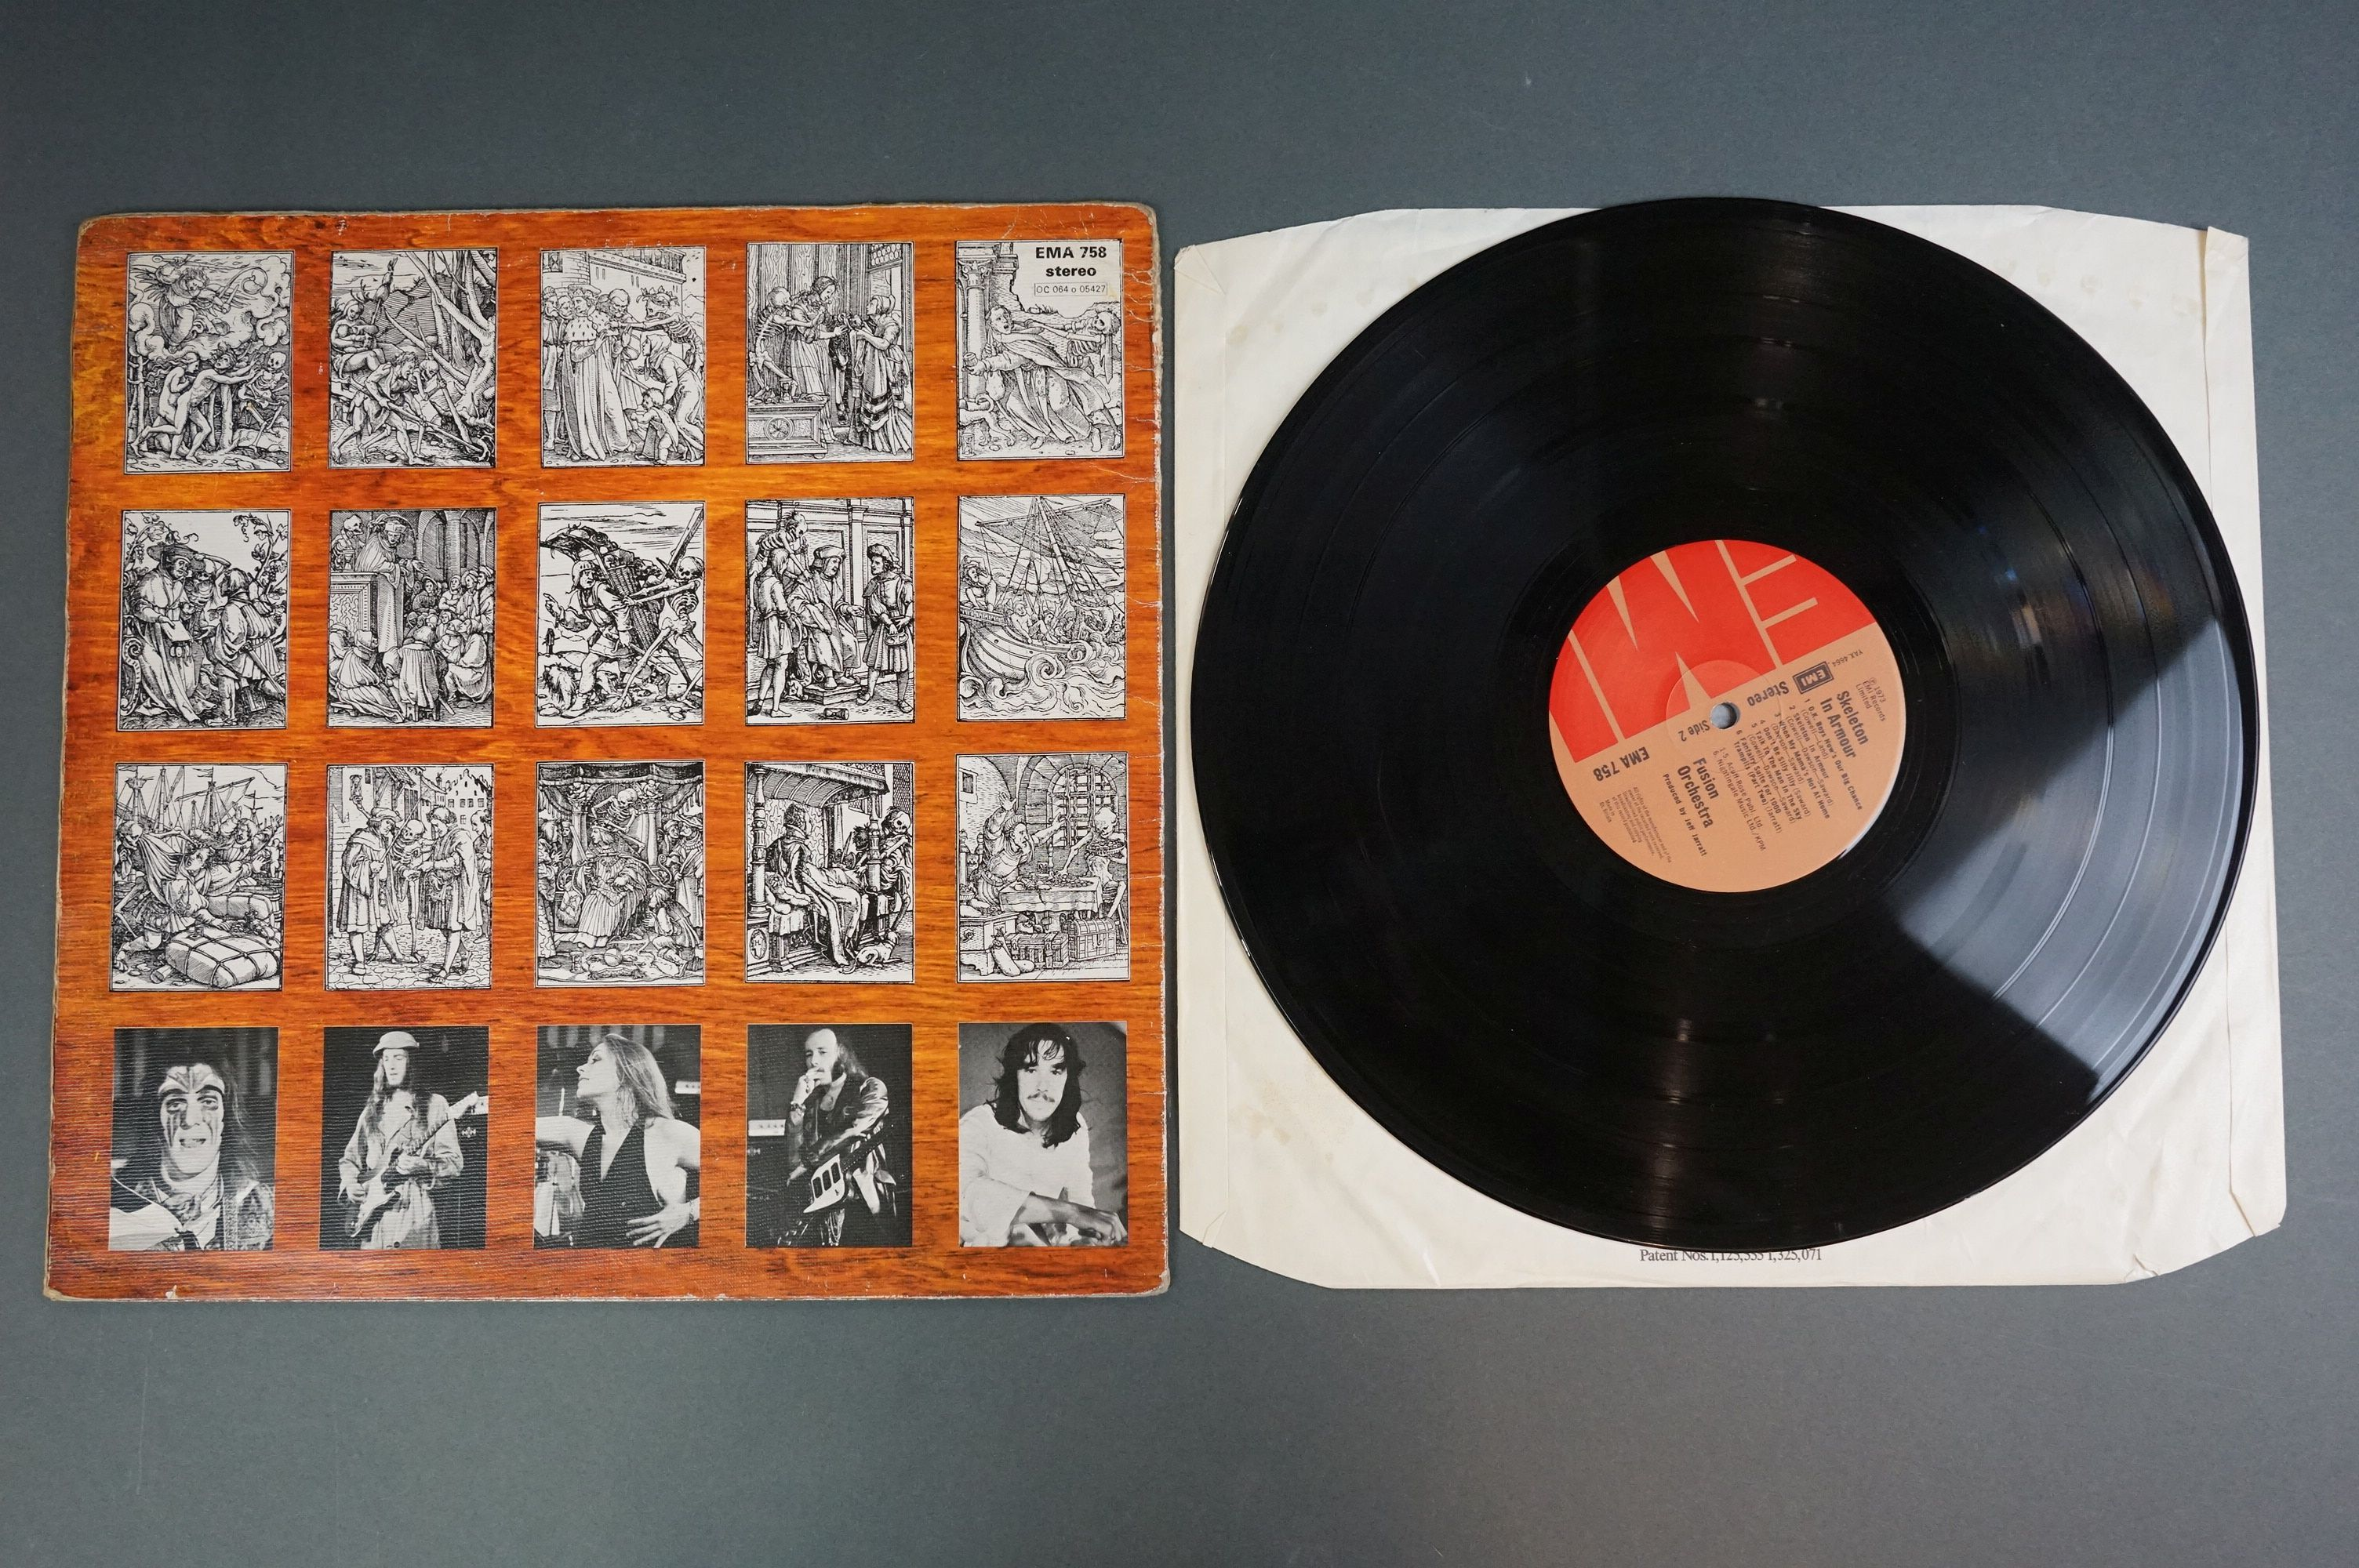 Vinyl - Fusion Orchestra Skeleton In Armour LP EMA758, sleeve vg+ with buffering to corners, - Image 3 of 6